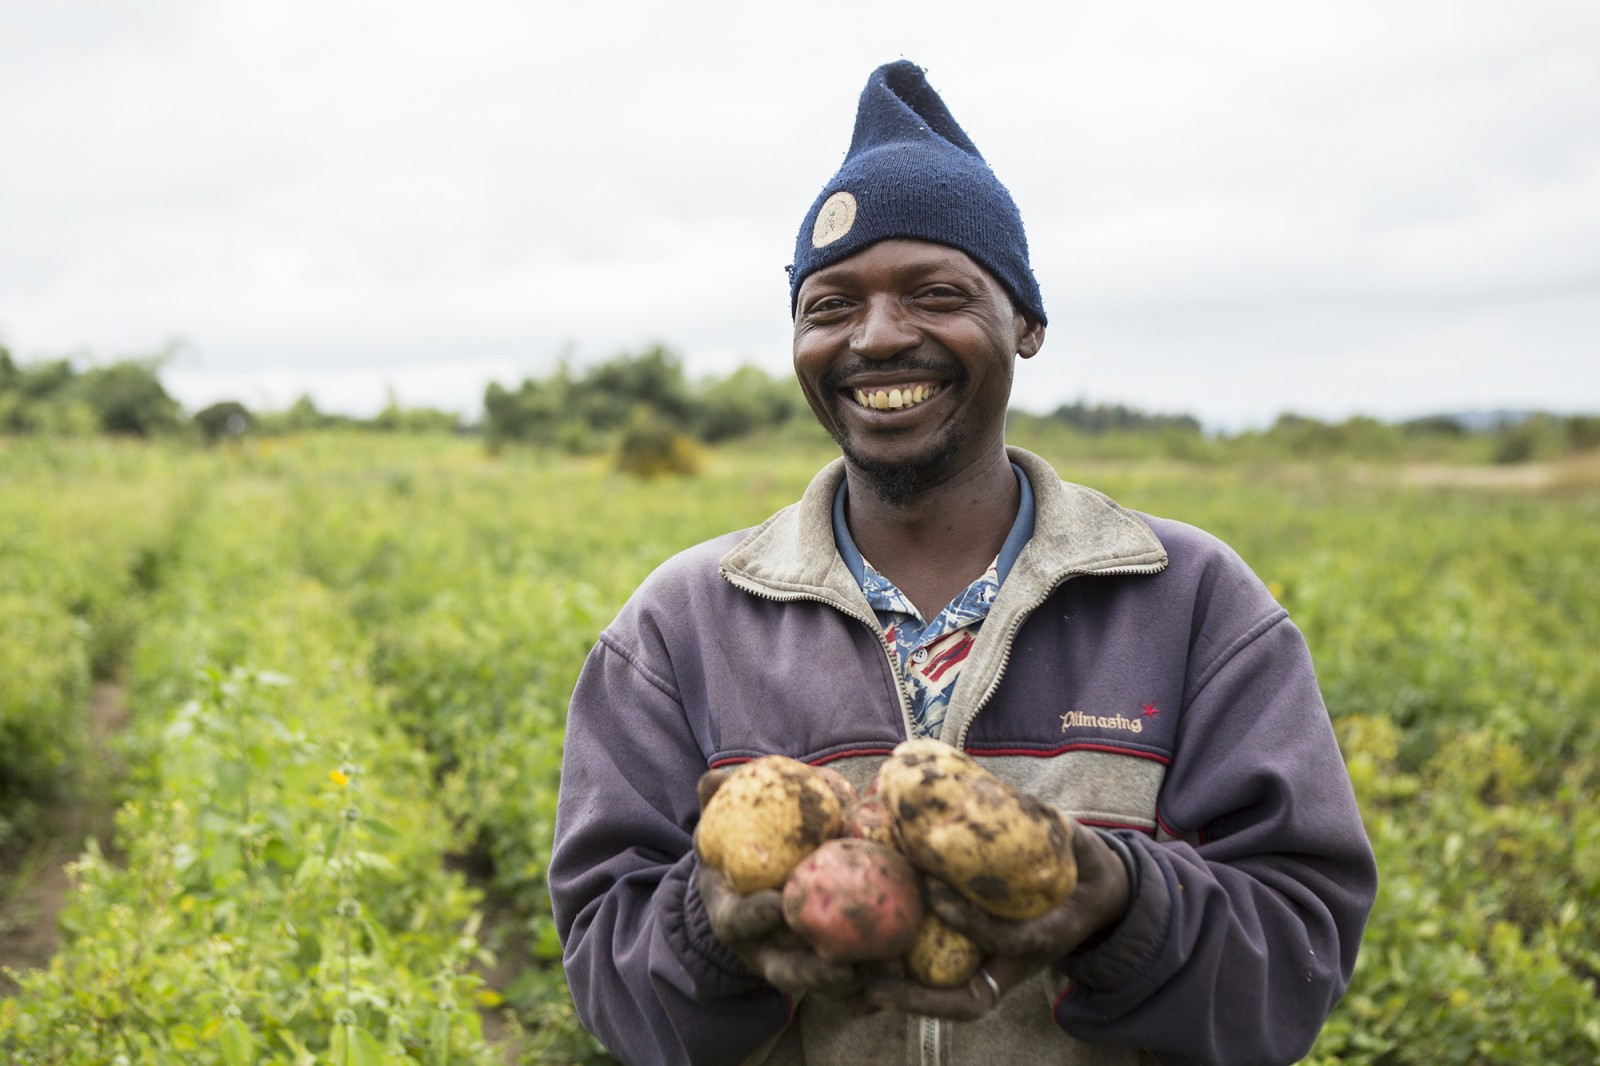 """A farmer shows off potatoes he has grown near Iringa, Tanzania, which lies within the Southern Agricultural Growth Corridor. The project's stated objective is to """"foster inclusive, commercially successful agribusinesses."""" Photo courtesy USAID/Tanzania via Flickr Creative Commons"""